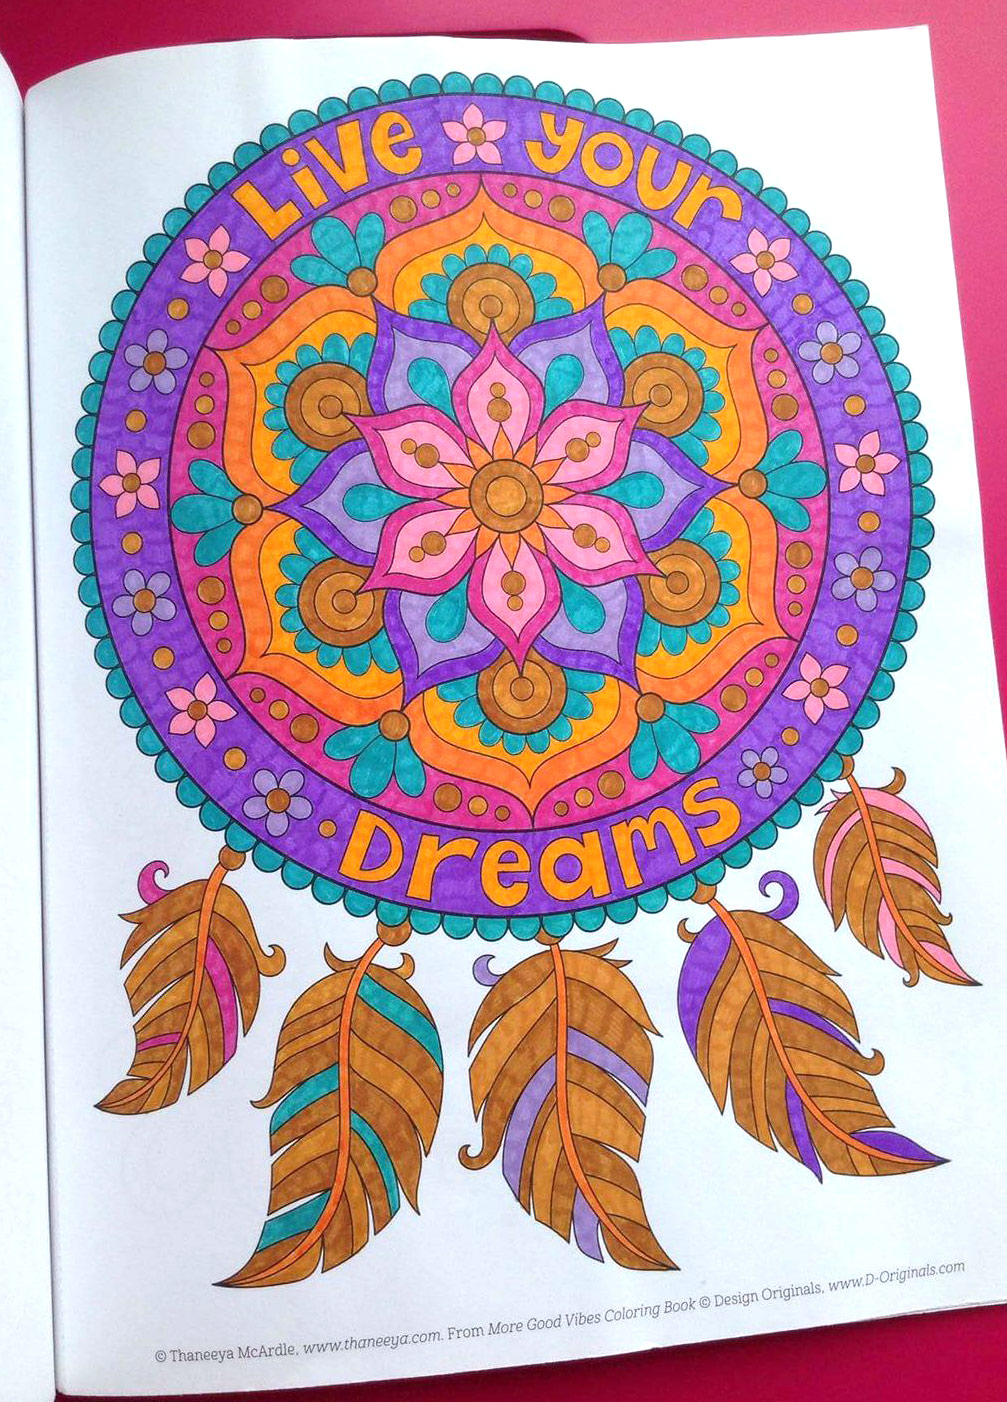 dream-catcher-coloring-page-by-Thaneeya-McArdle-colored-by-TammyM.jpg